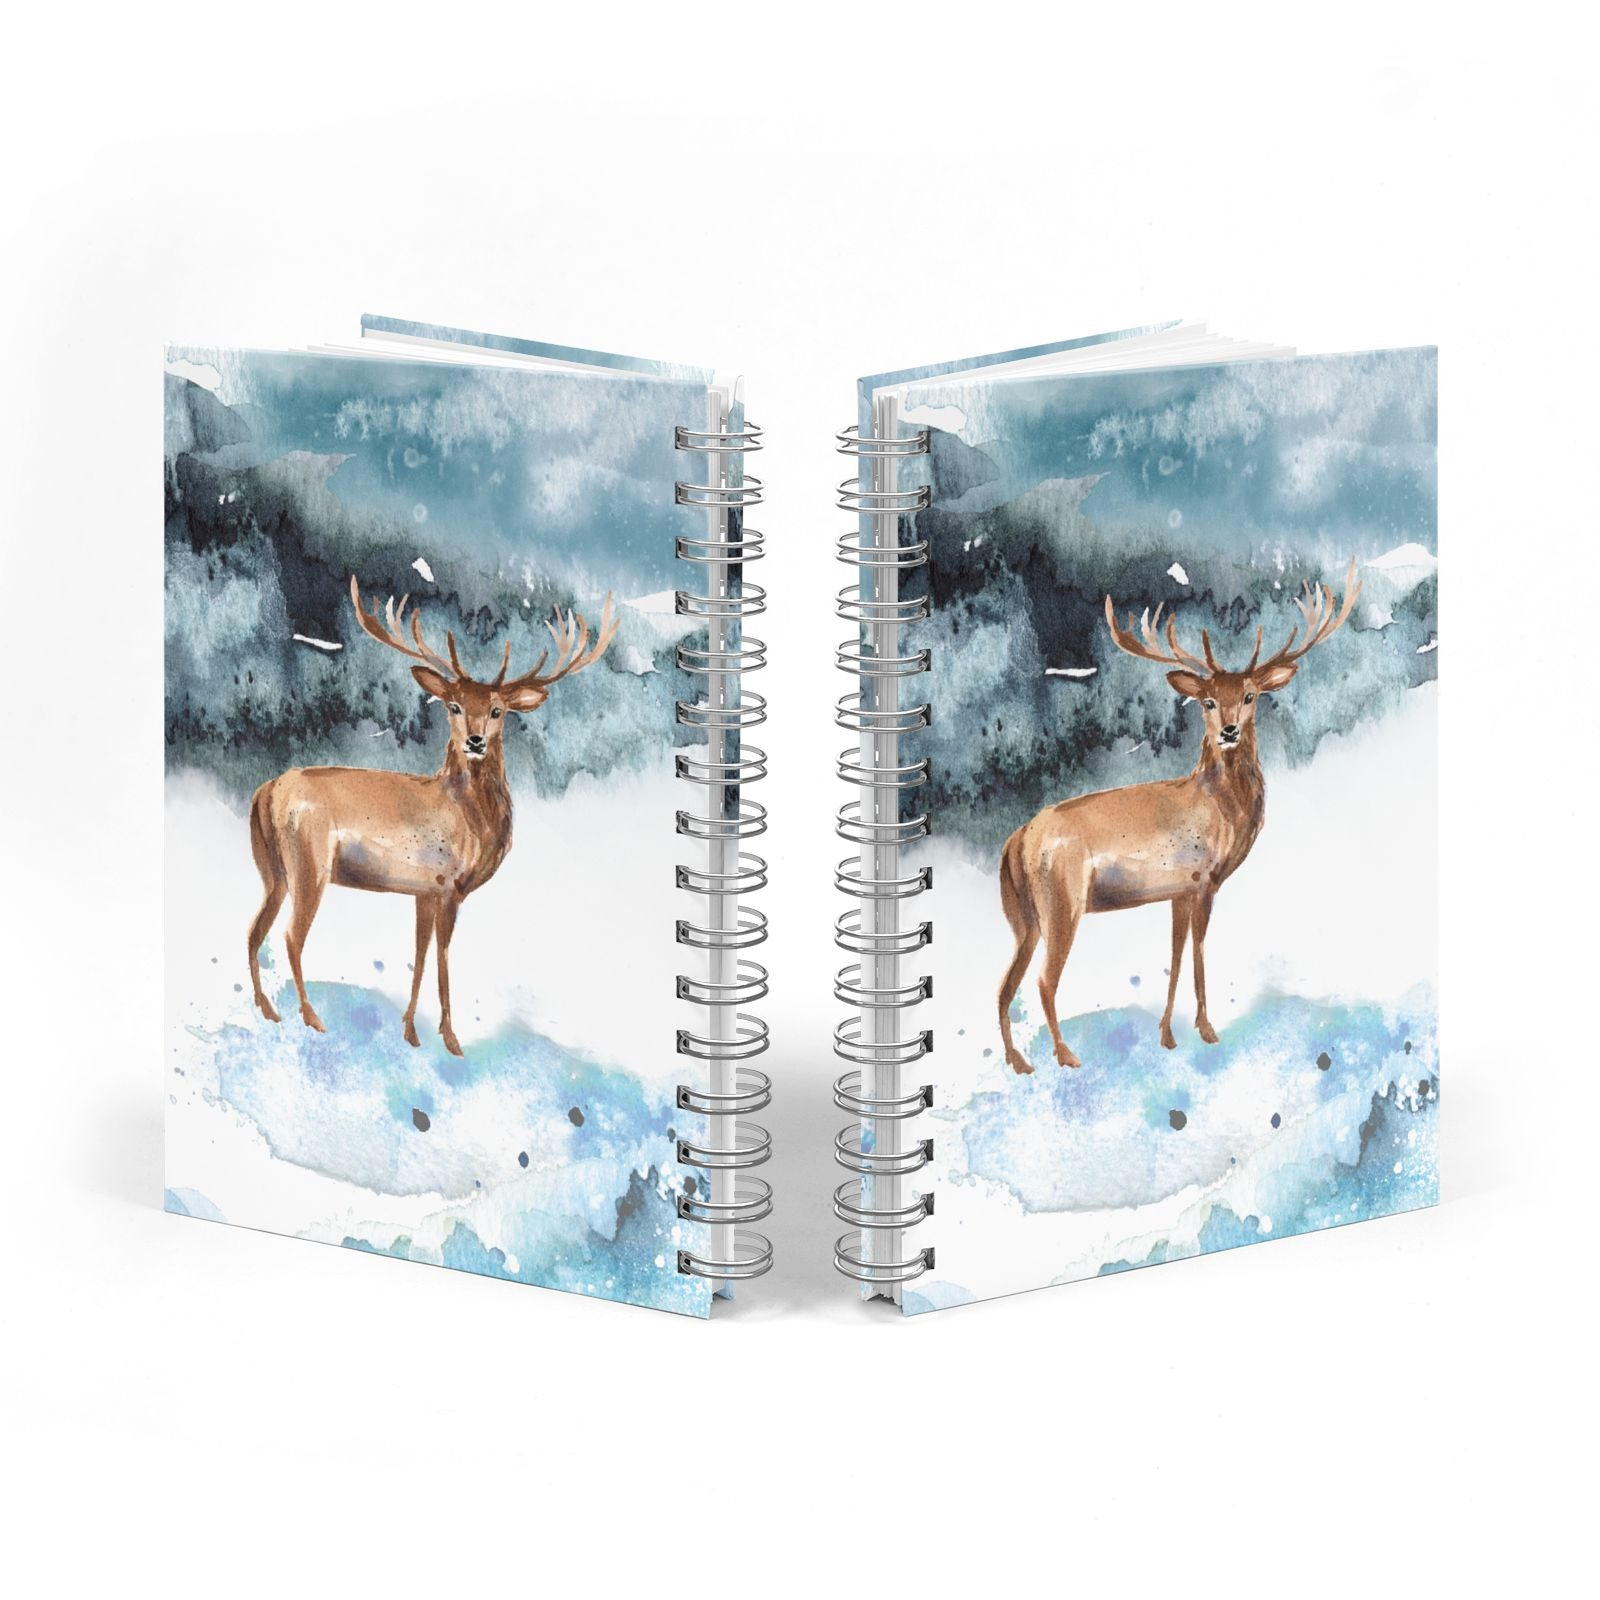 Christmas Winter Stag Notebook with Silver Coil Spine View